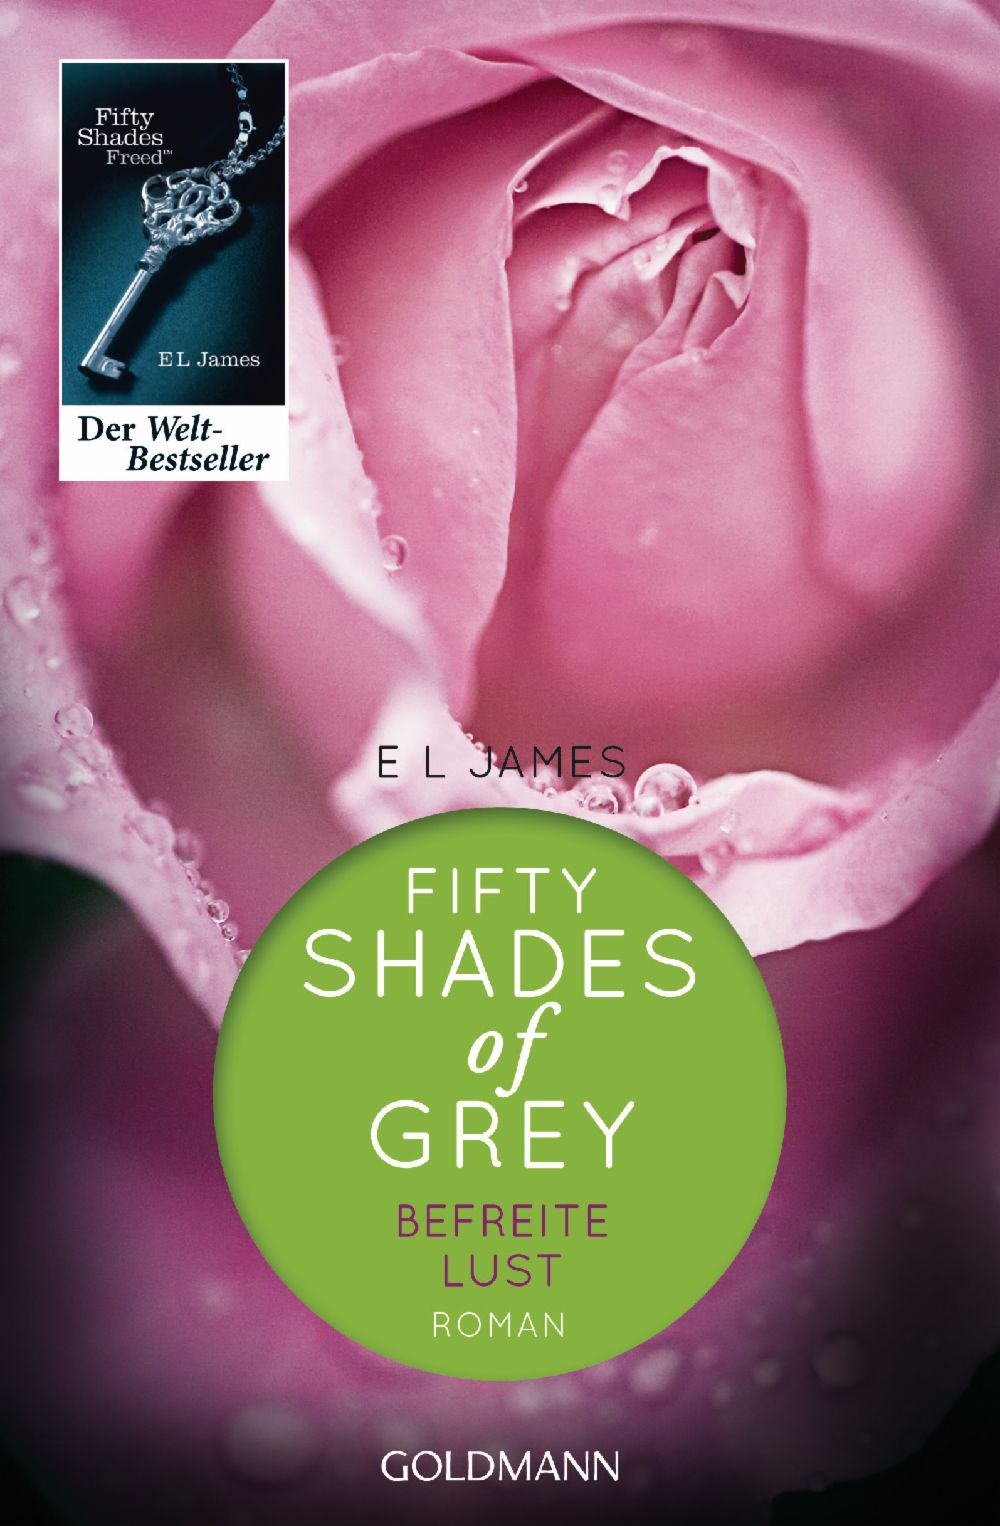 https://www.randomhouse.de/Paperback/Fifty-Shades-of-Grey-Befreite-Lust/E-L-James/Goldmann-TB/e420951.rhd